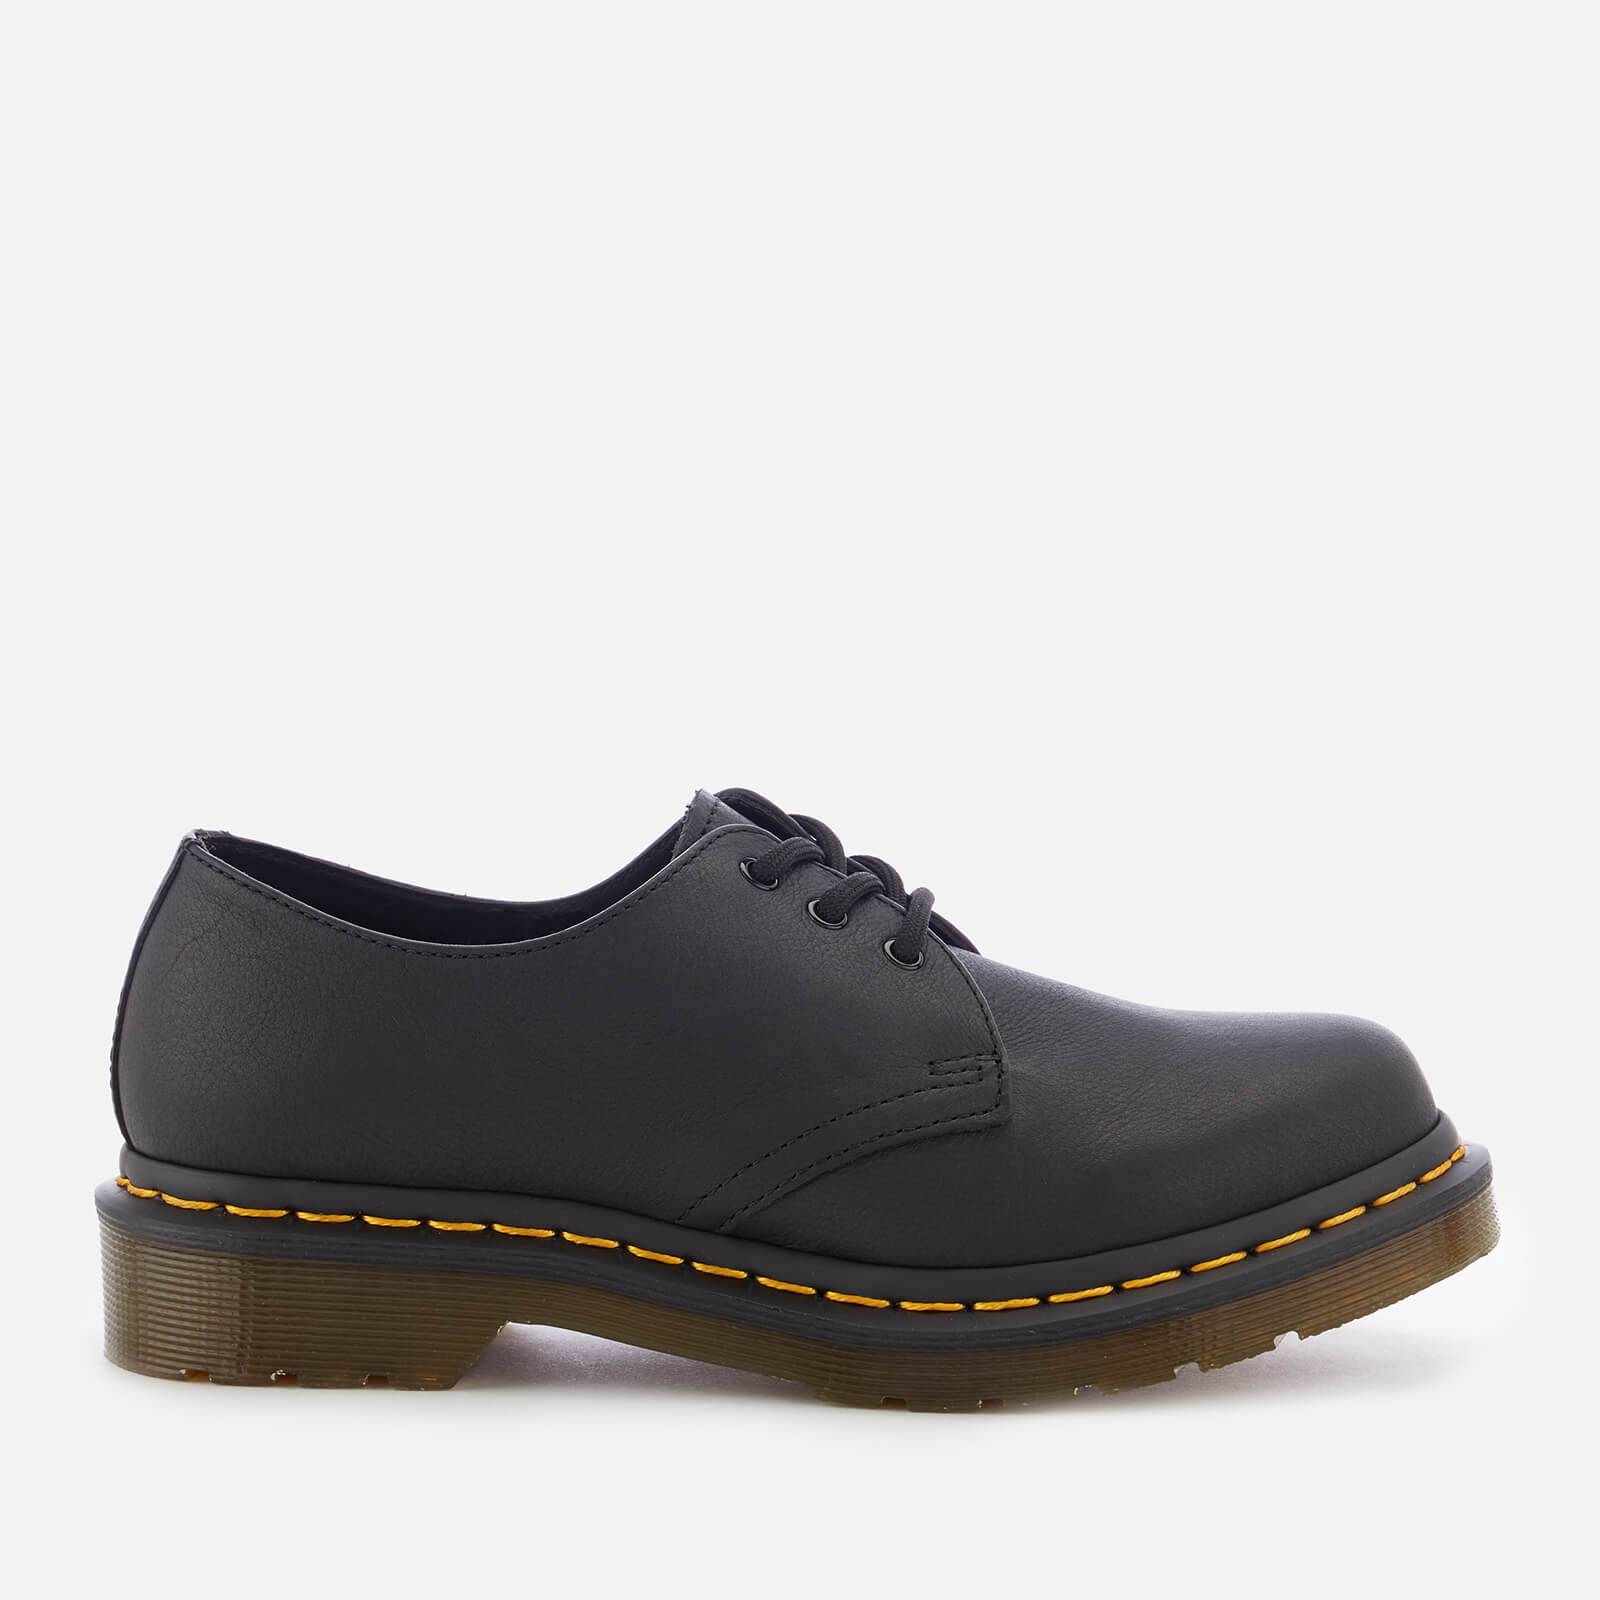 Dr. Martens Women's 1461 W Virginia Leather 3-Eye Shoes - Black - UK 7 - Black